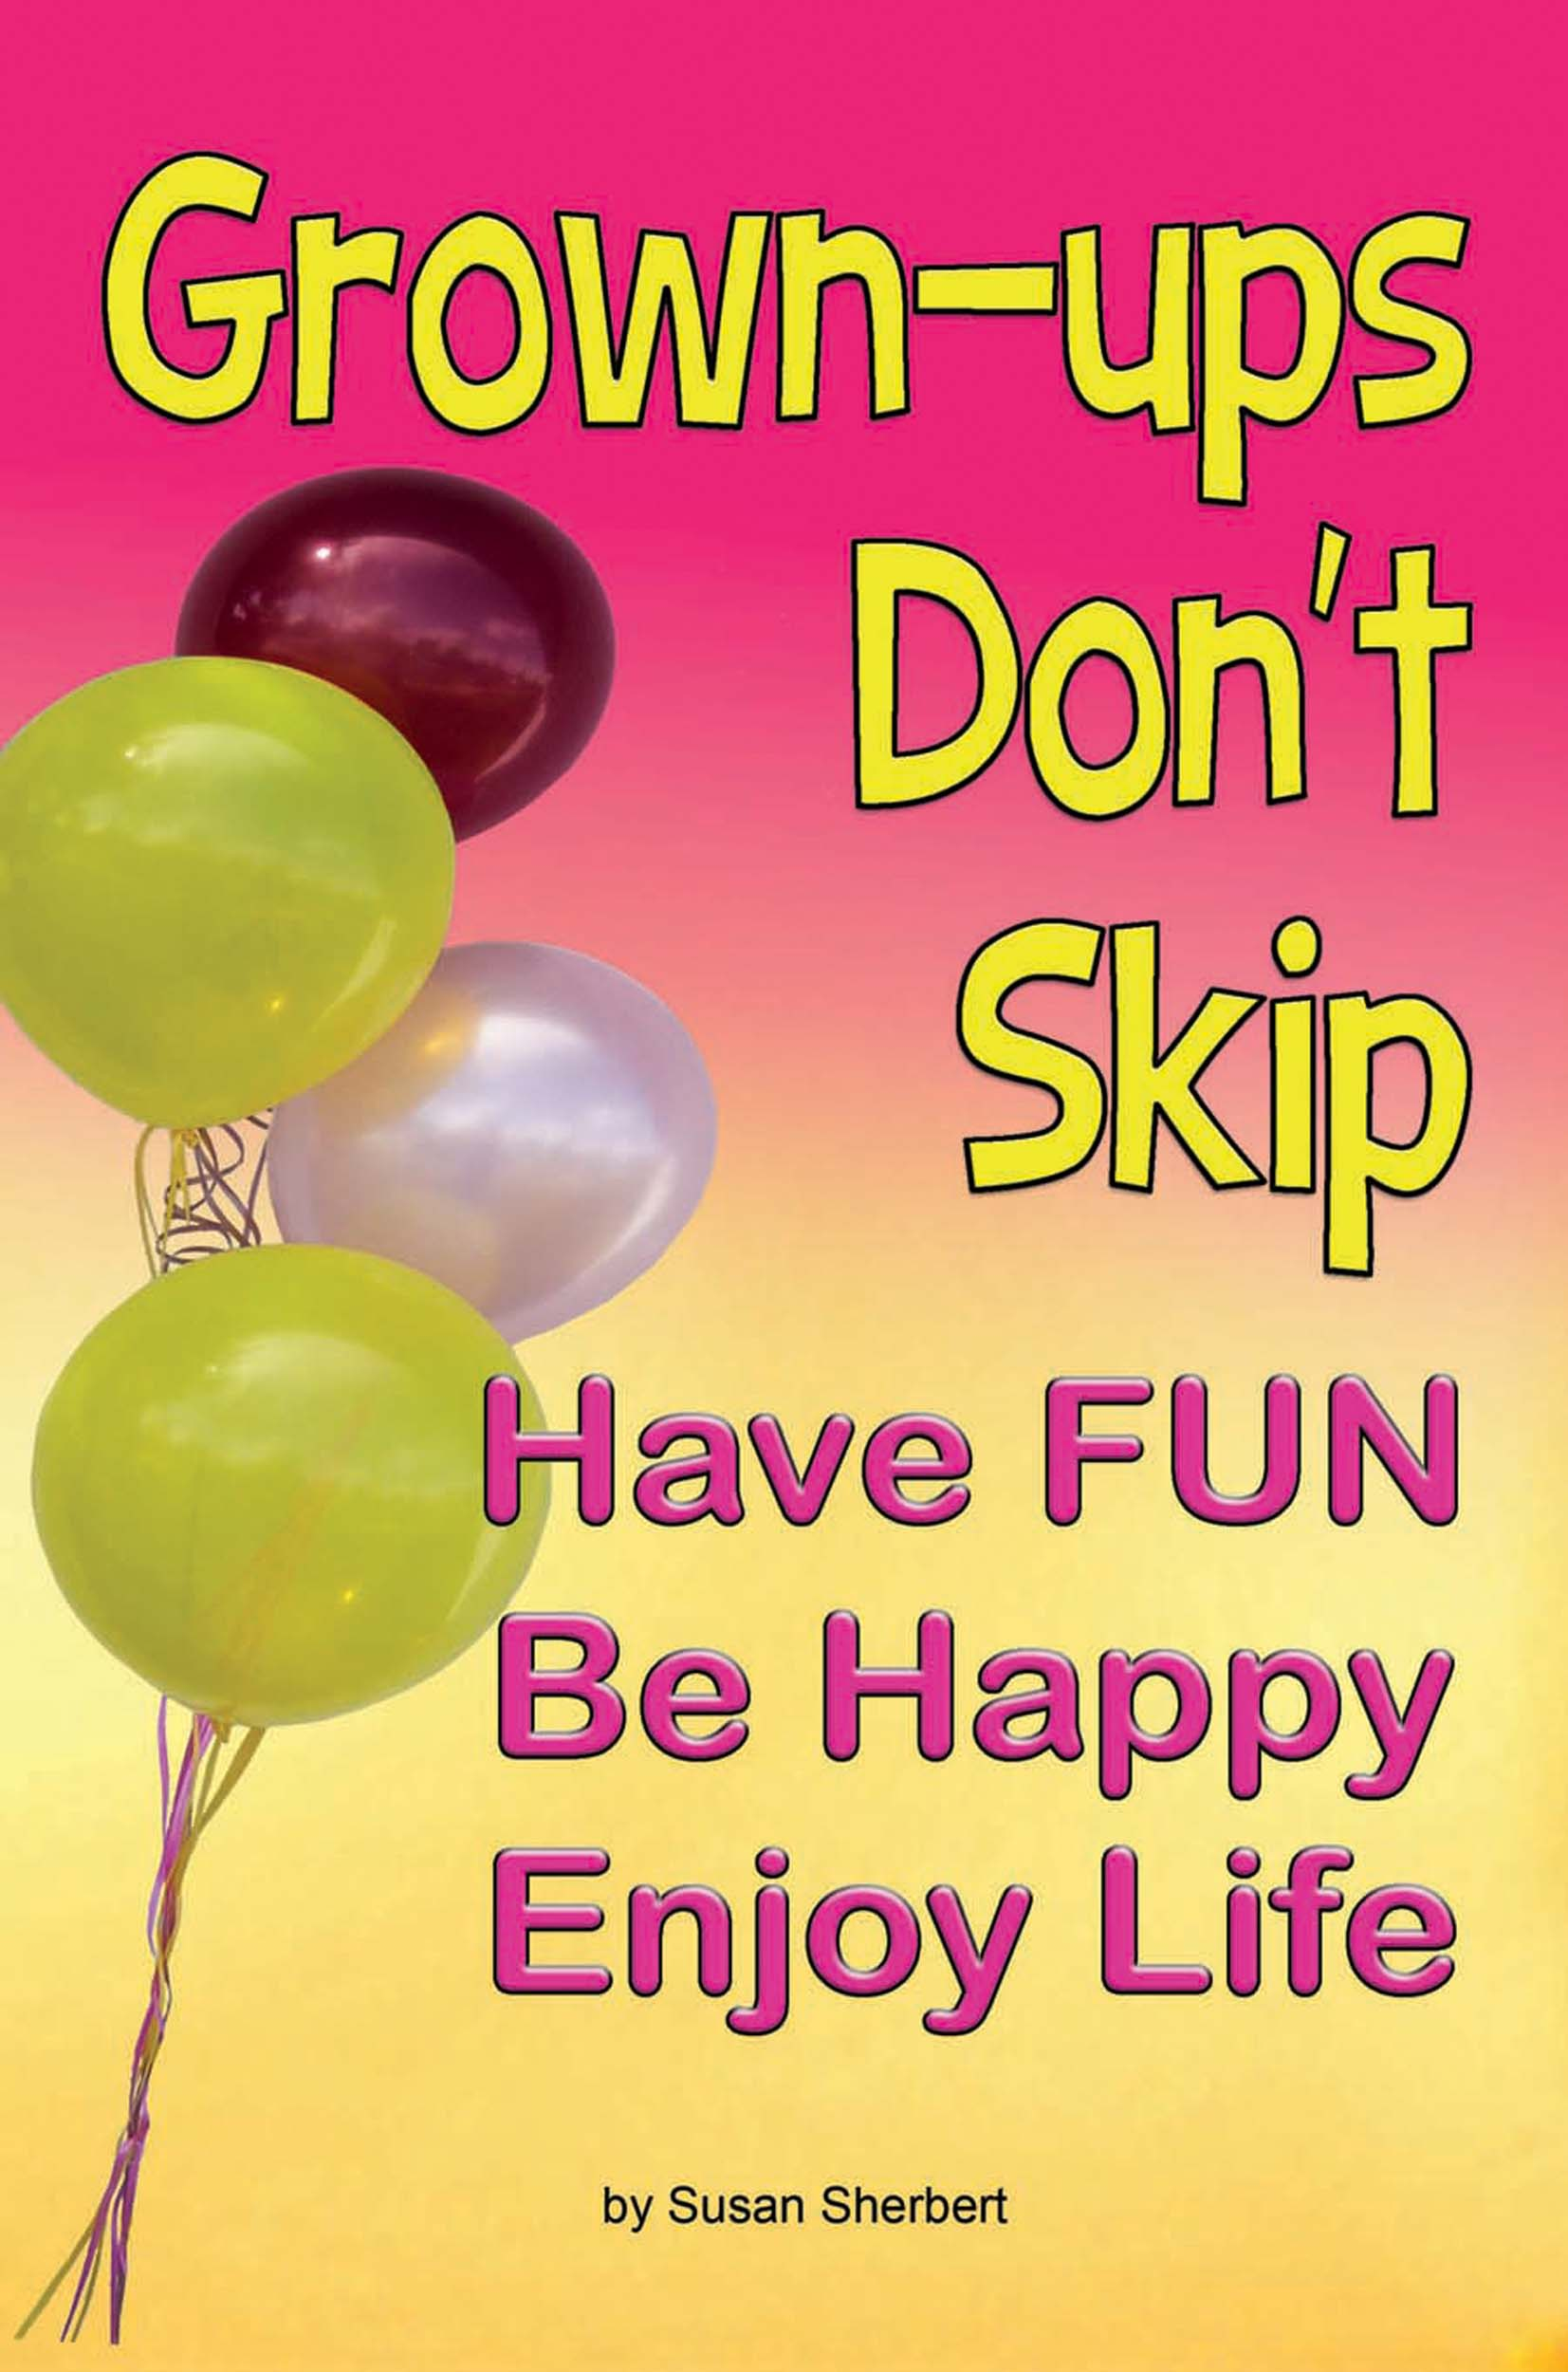 Have fun be happy enjoy life by Susan Sherbert